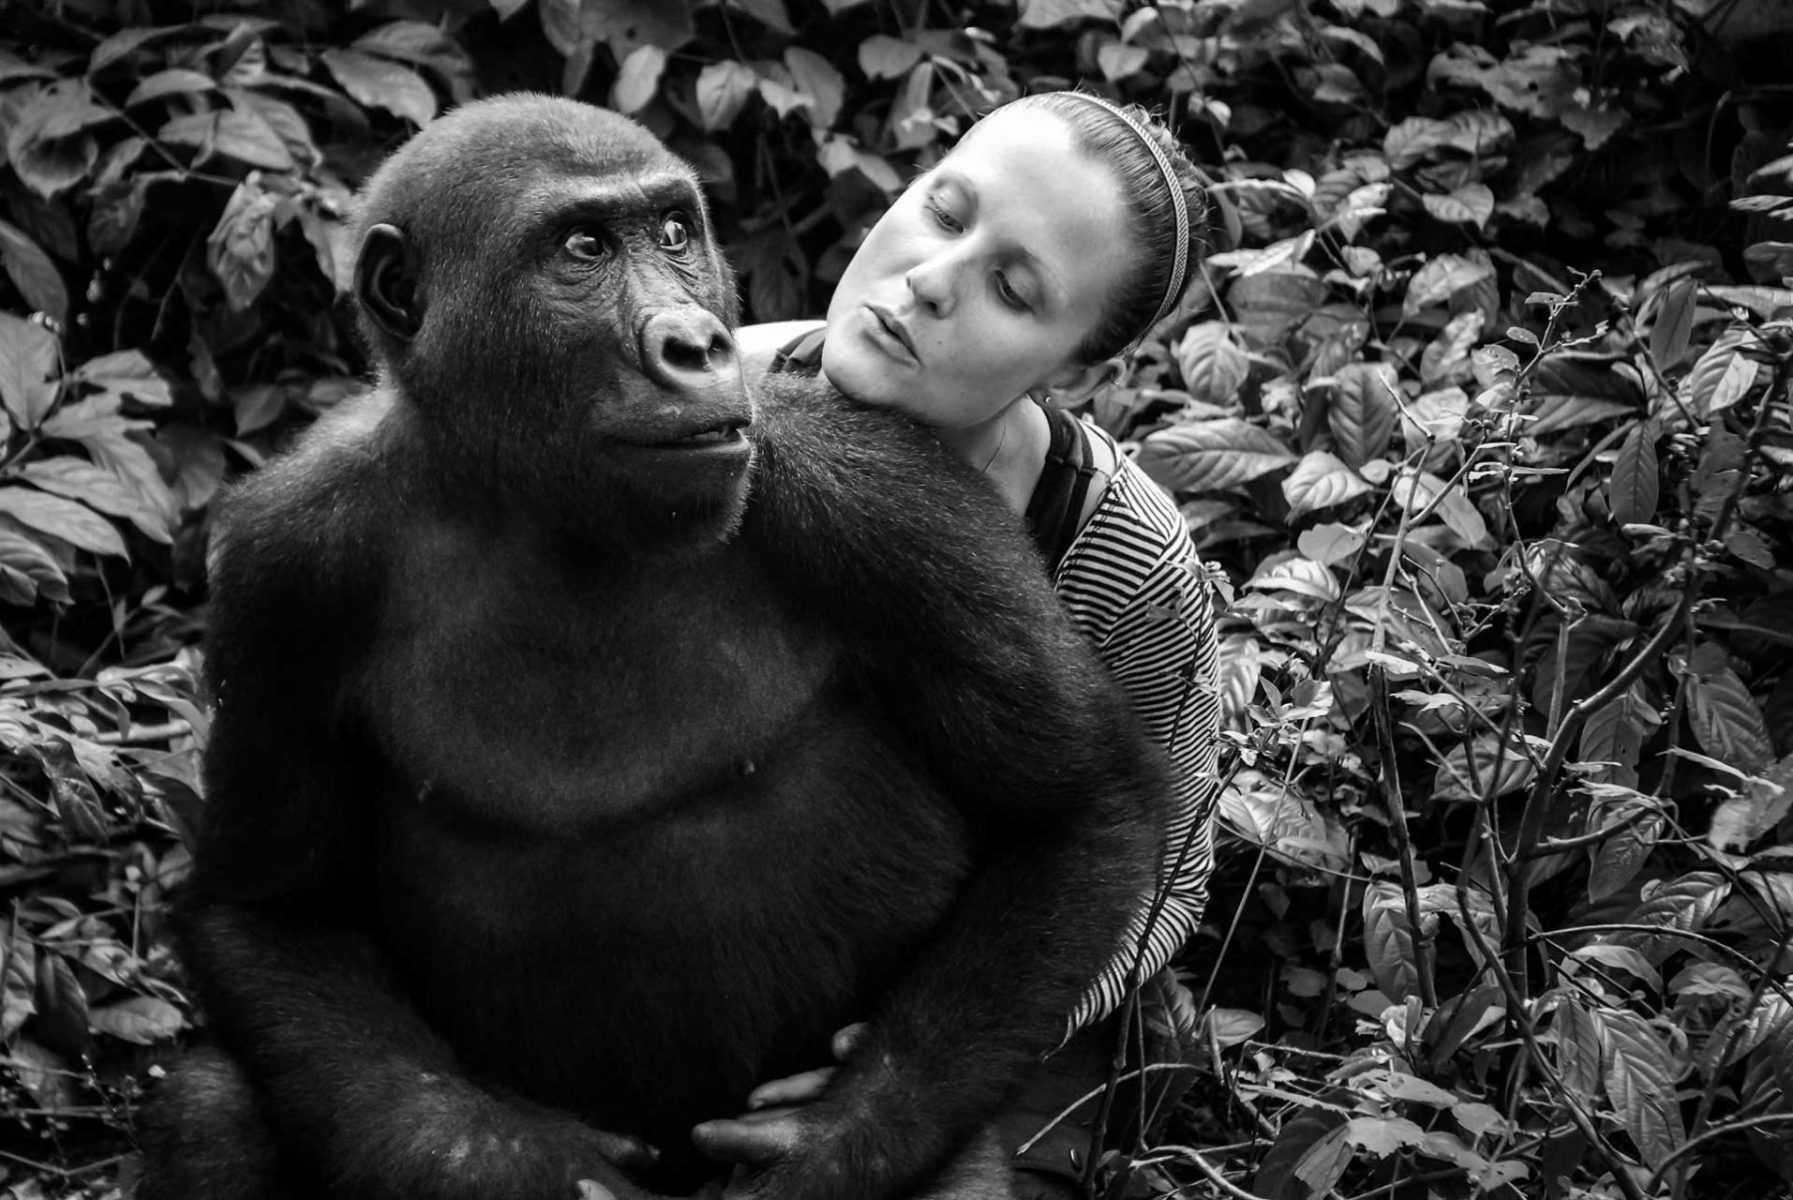 Rachel Hogan with Nkan Daniel, a rescued gorilla whom she raised since he was orphaned by the bush meat trade. Hogan is the Director at Ape Action Africa, a primate sanctuary. Cameroon, 2009